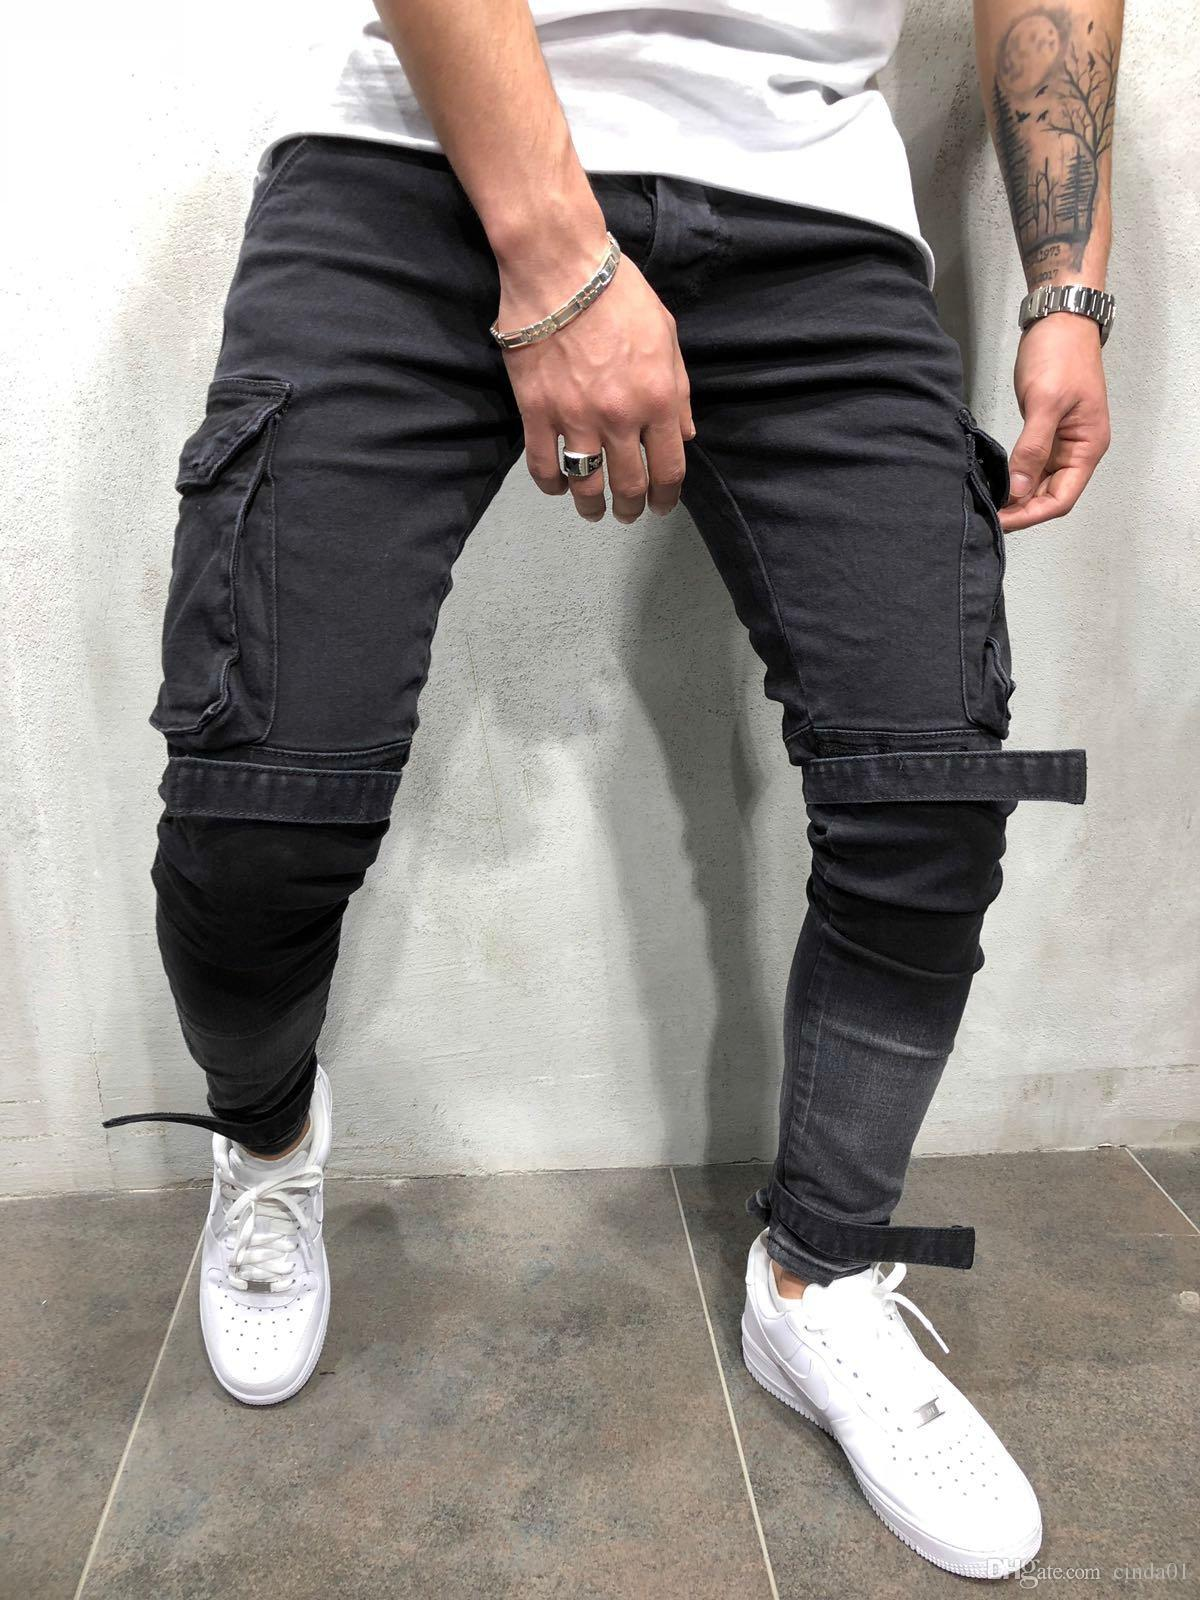 f8eab6130811 2019 Mens Black Denim Slim Fit Jeans Male Skinny Pencil Pants Casual Cargo  Pants Trousers With Pockets Straps From Cinda01, $48.74 | DHgate.Com